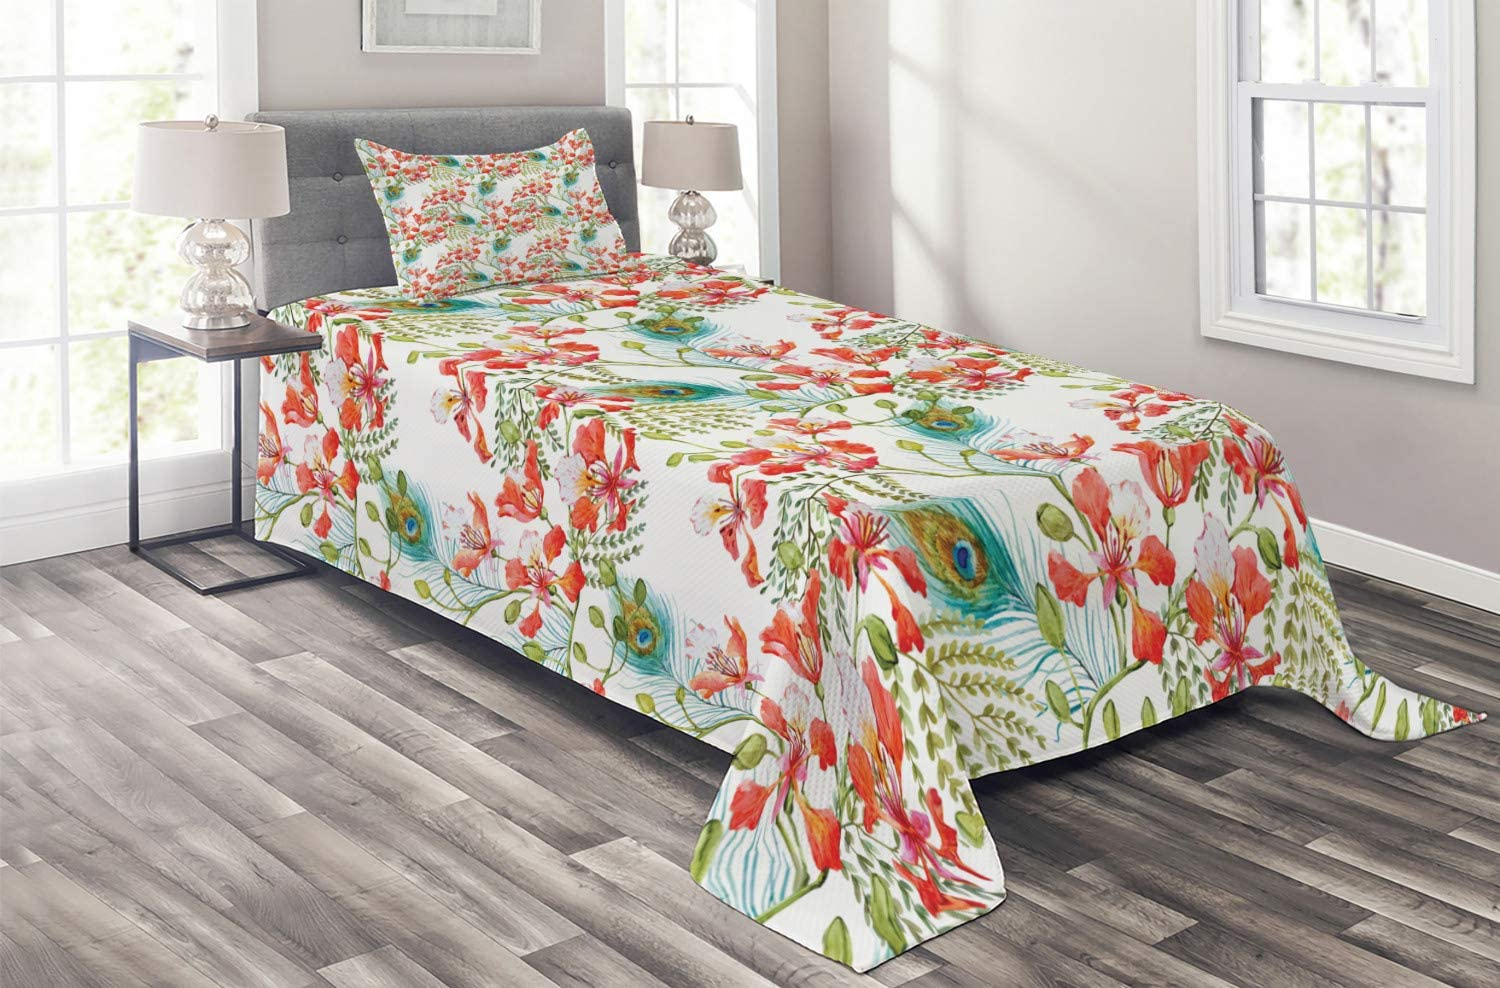 Ambesonne Spring Coverlet Peacock Feather Petunia Limited time Baltimore Mall cheap sale Blossom Field